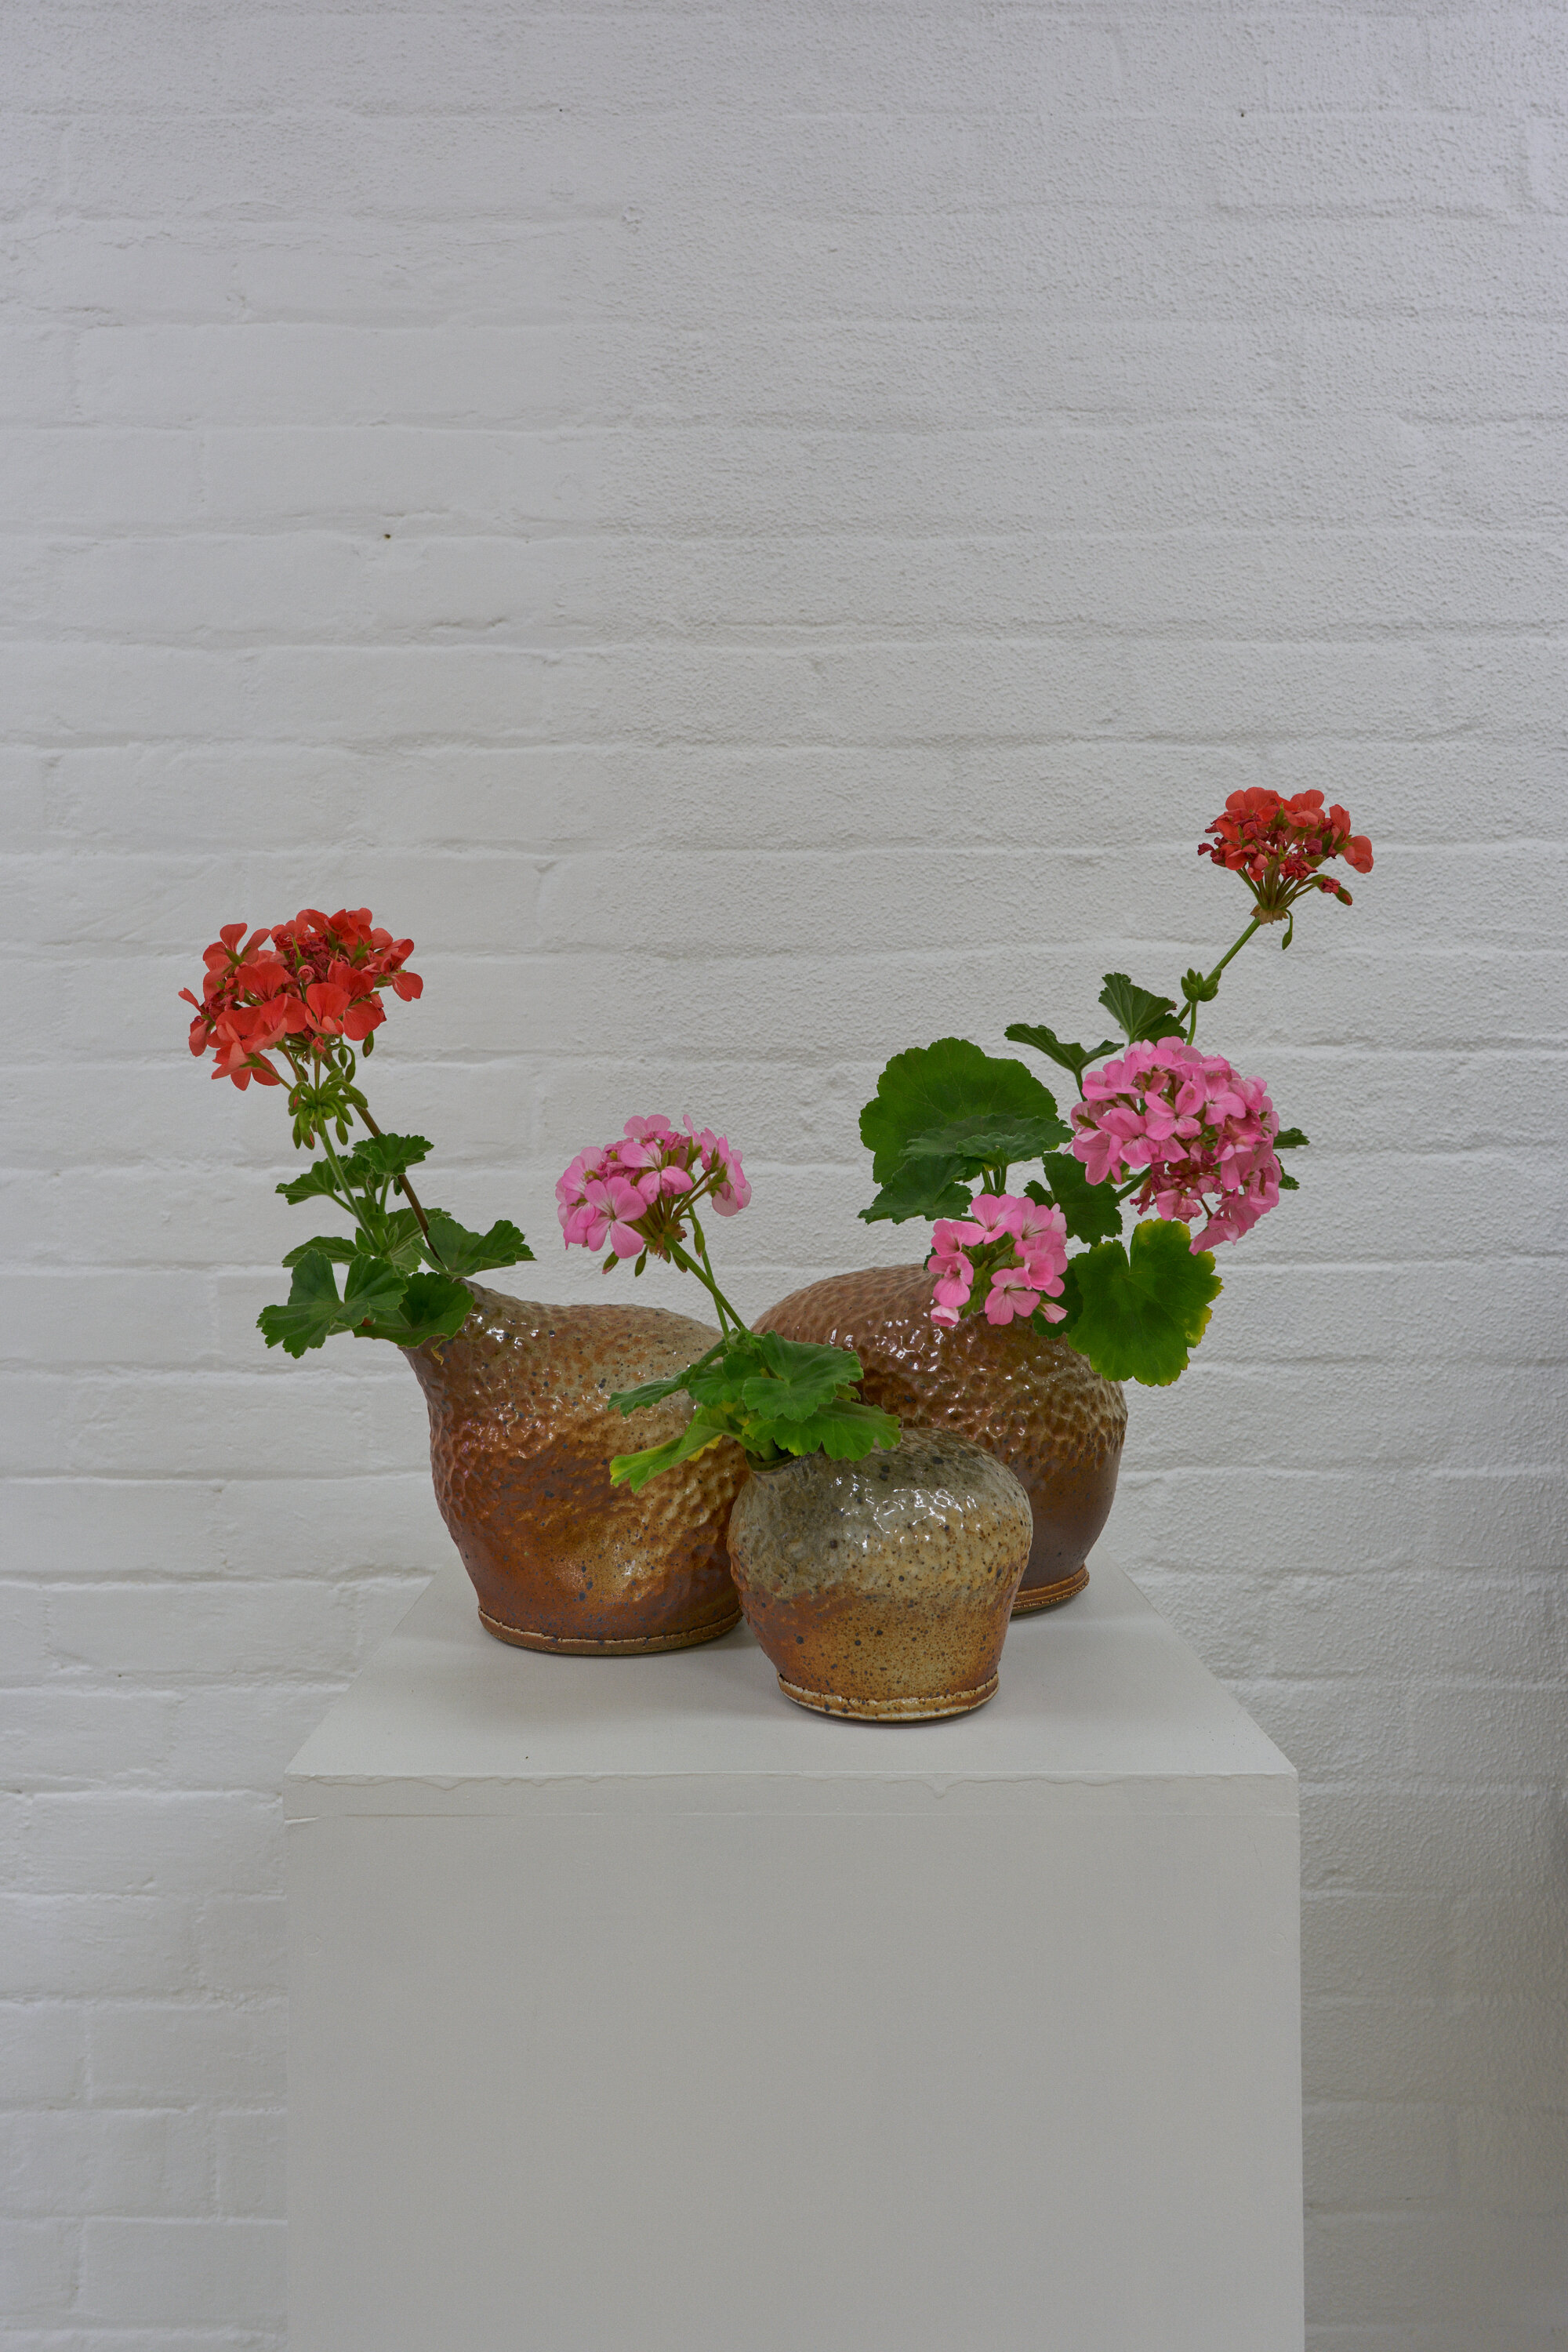 20191014_a flat shop [floral arrangements documentation_hannah vorrath-pajak]_DSC06313.jpg